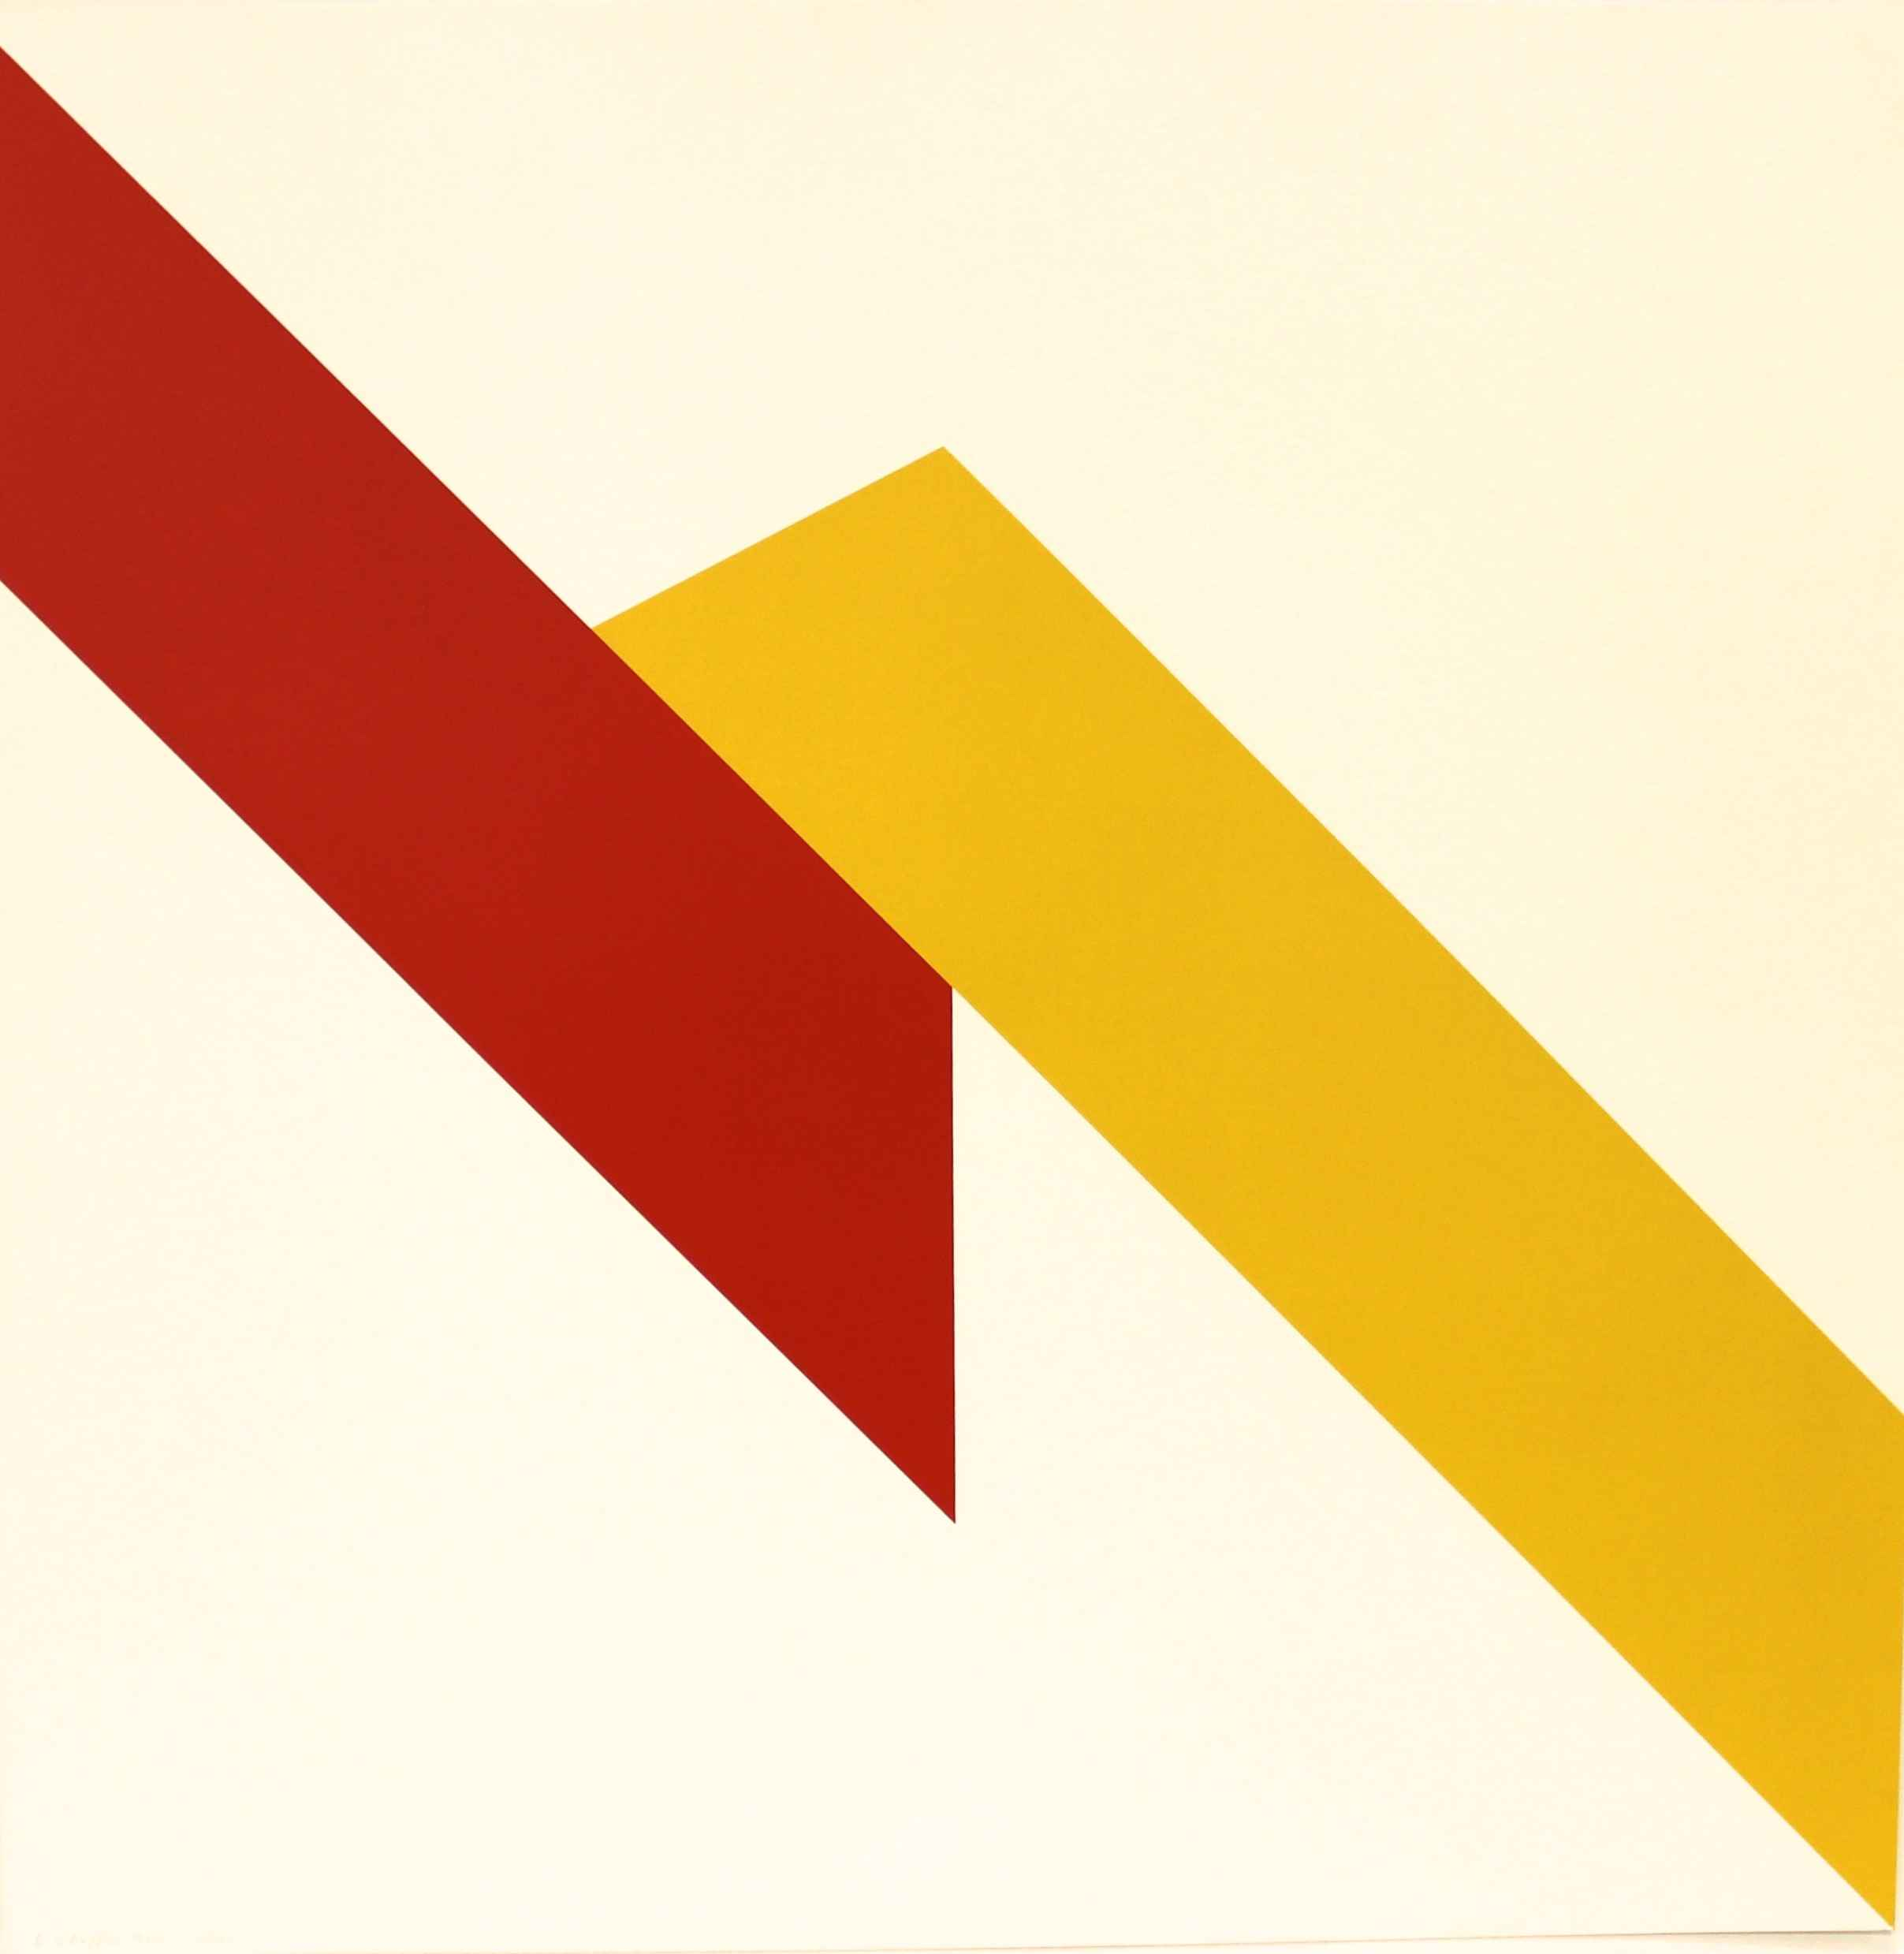 Untitled, 1970 by    - Masterpiece Online